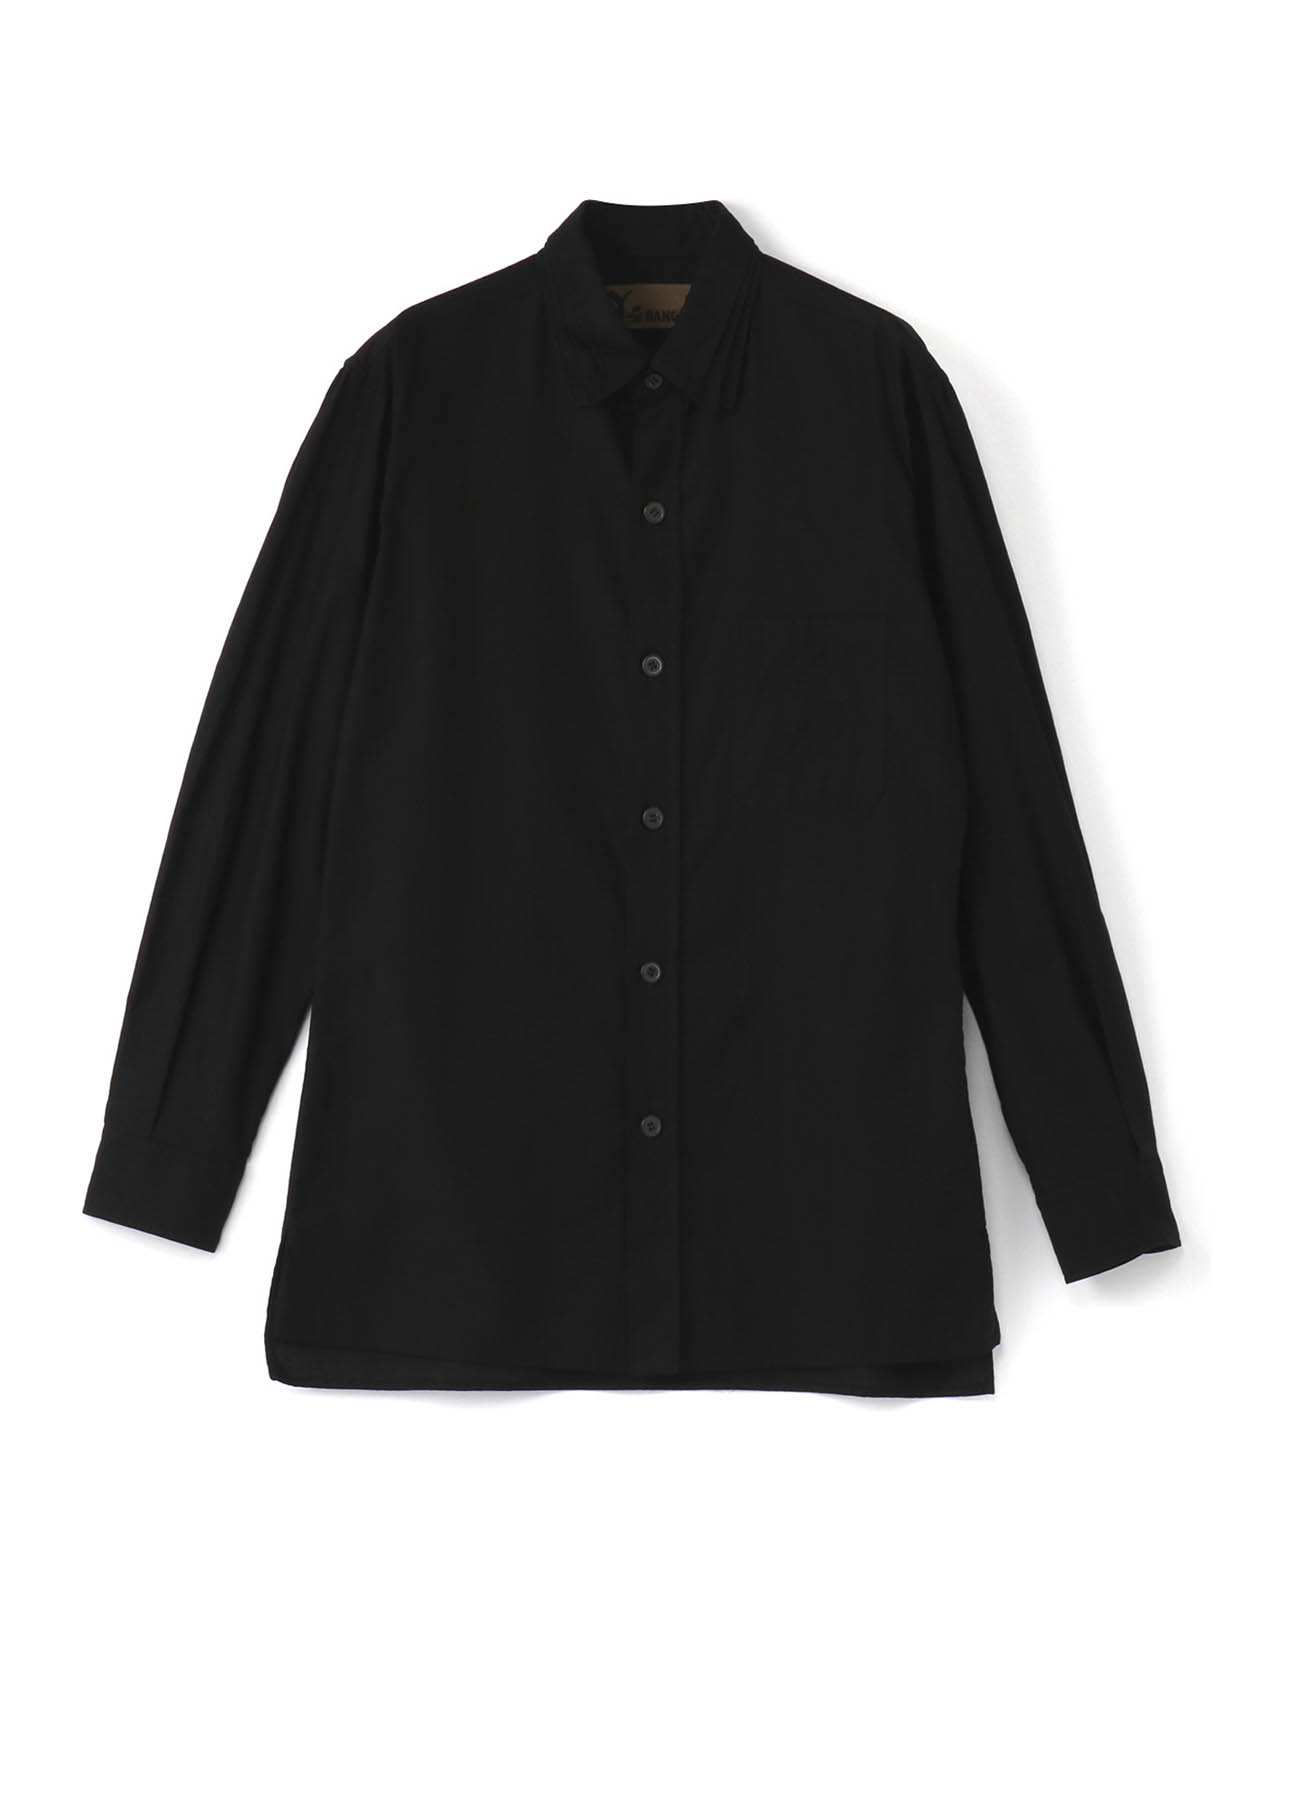 No.2 3 Layered Collar Shirt Cotton Twill - Thin